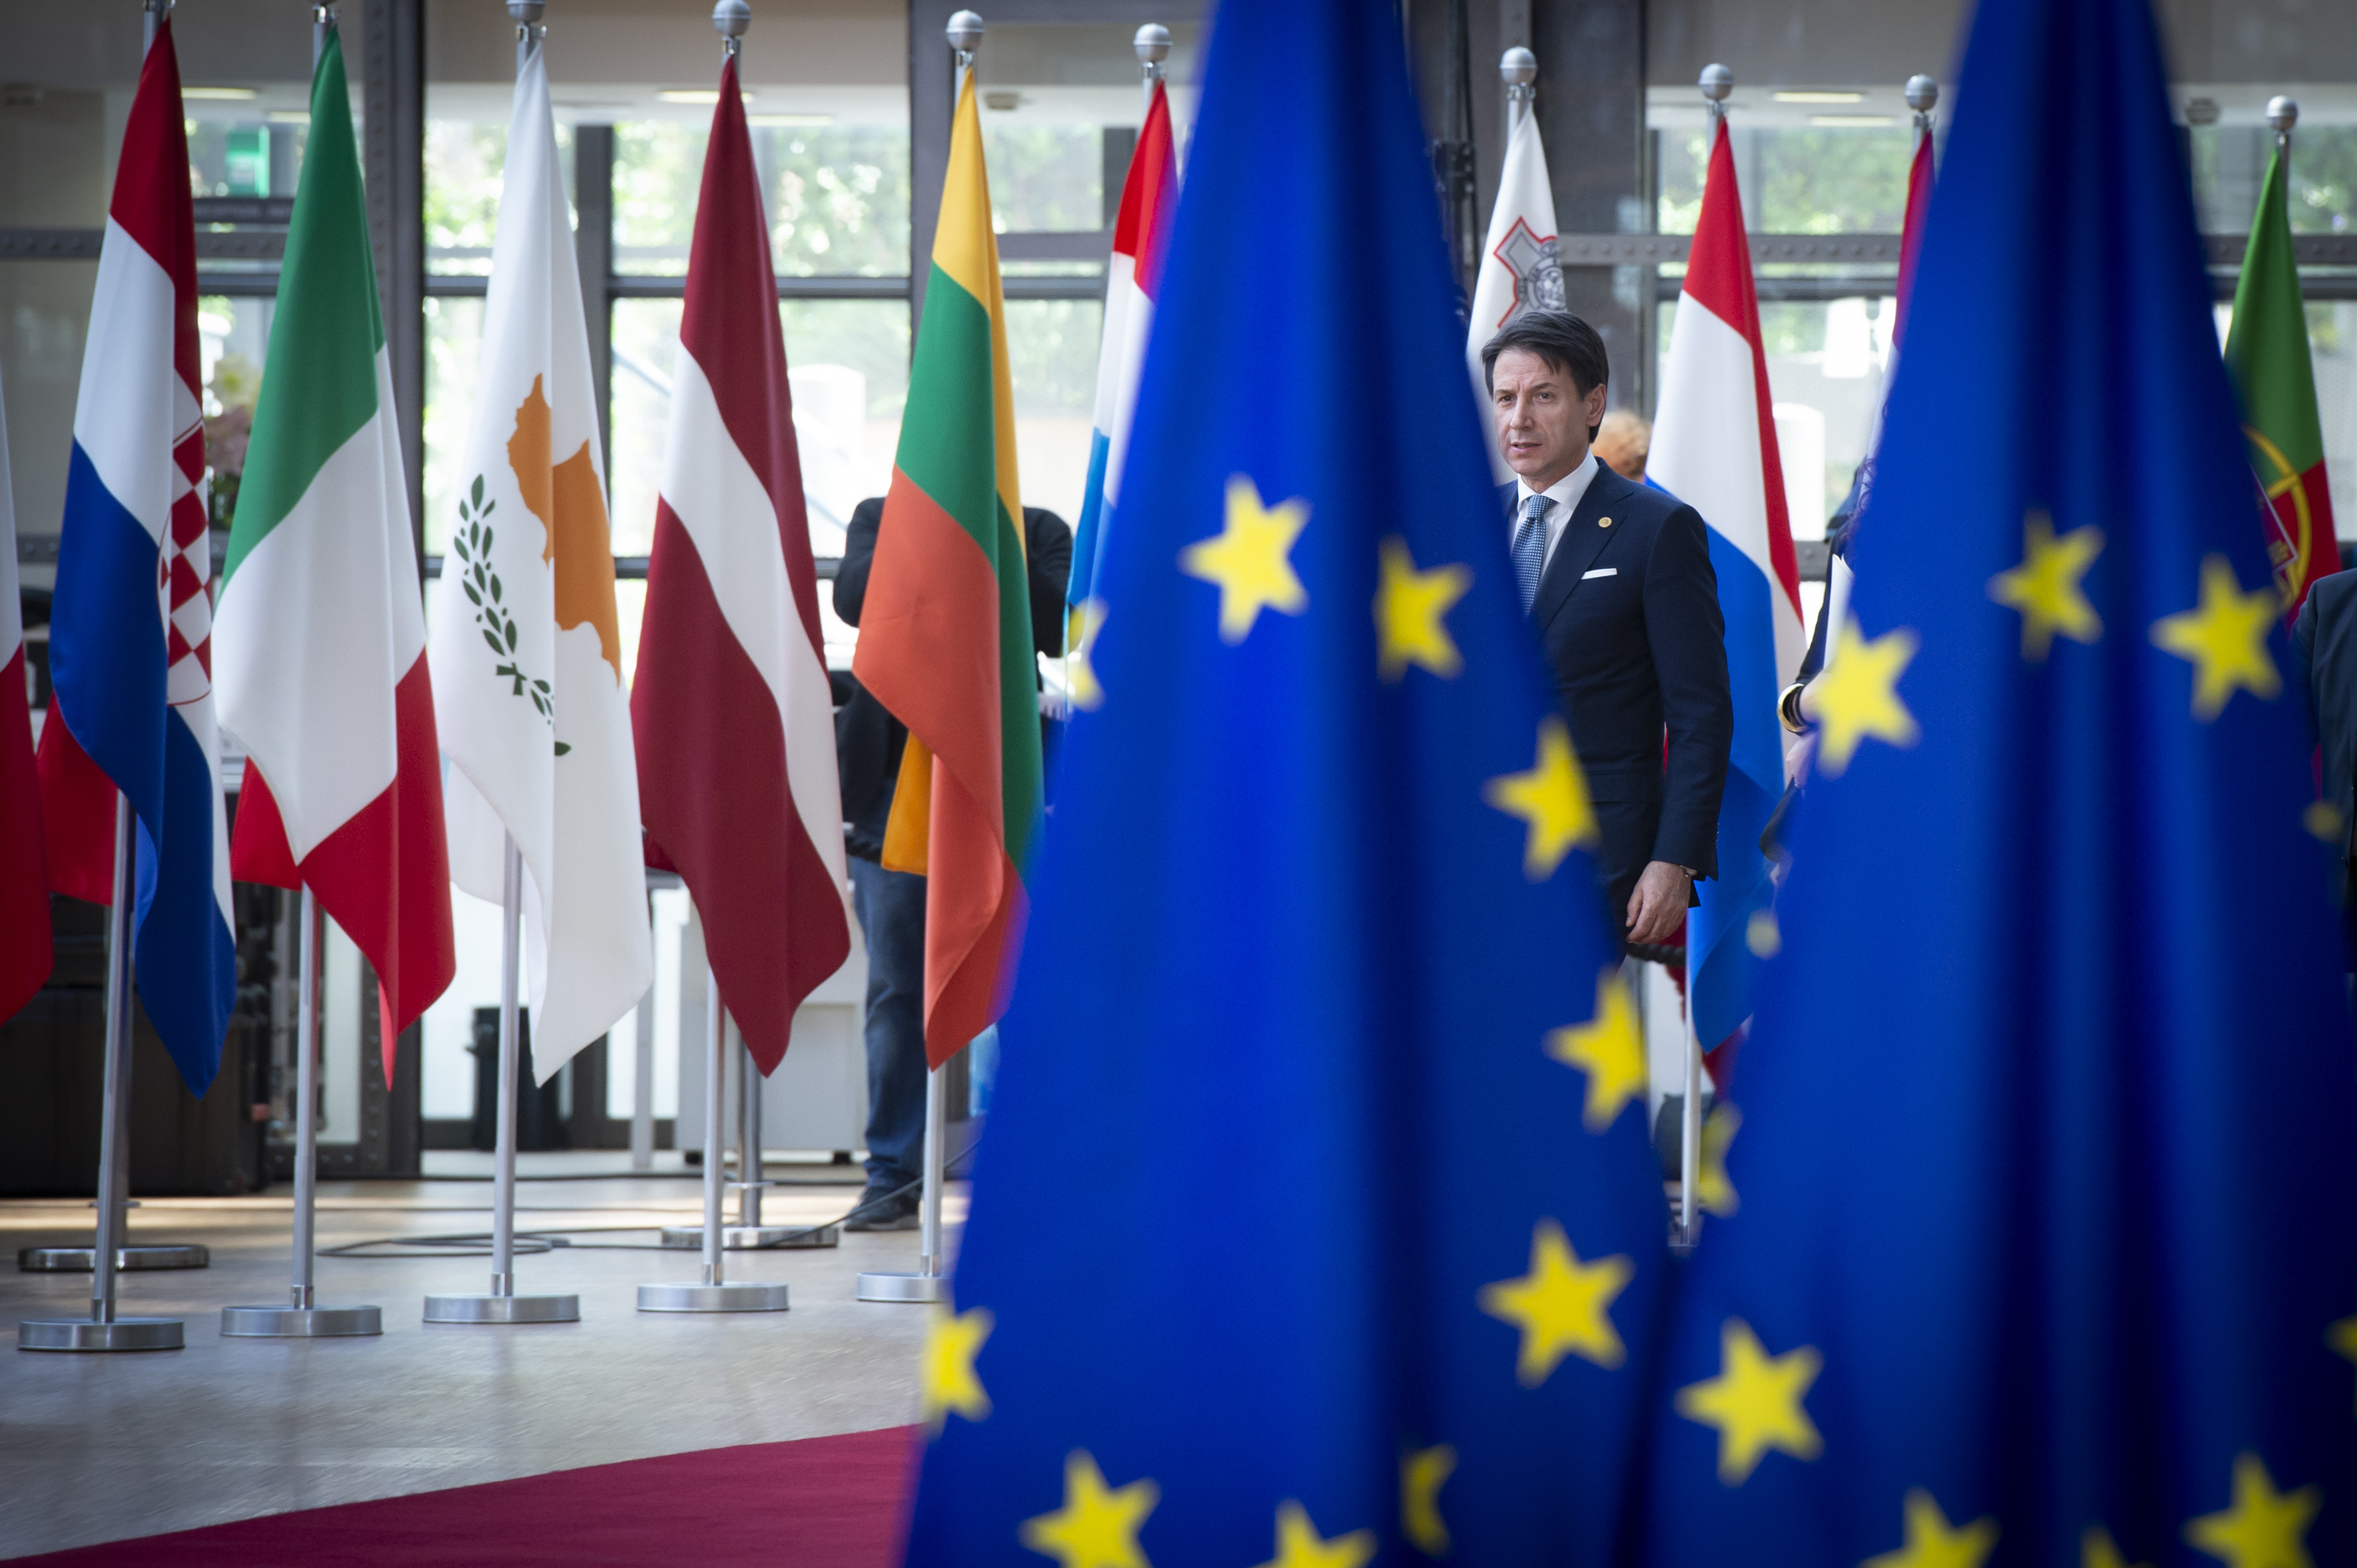 European Union leaders reach a deal to control immigration, but details remain unclear